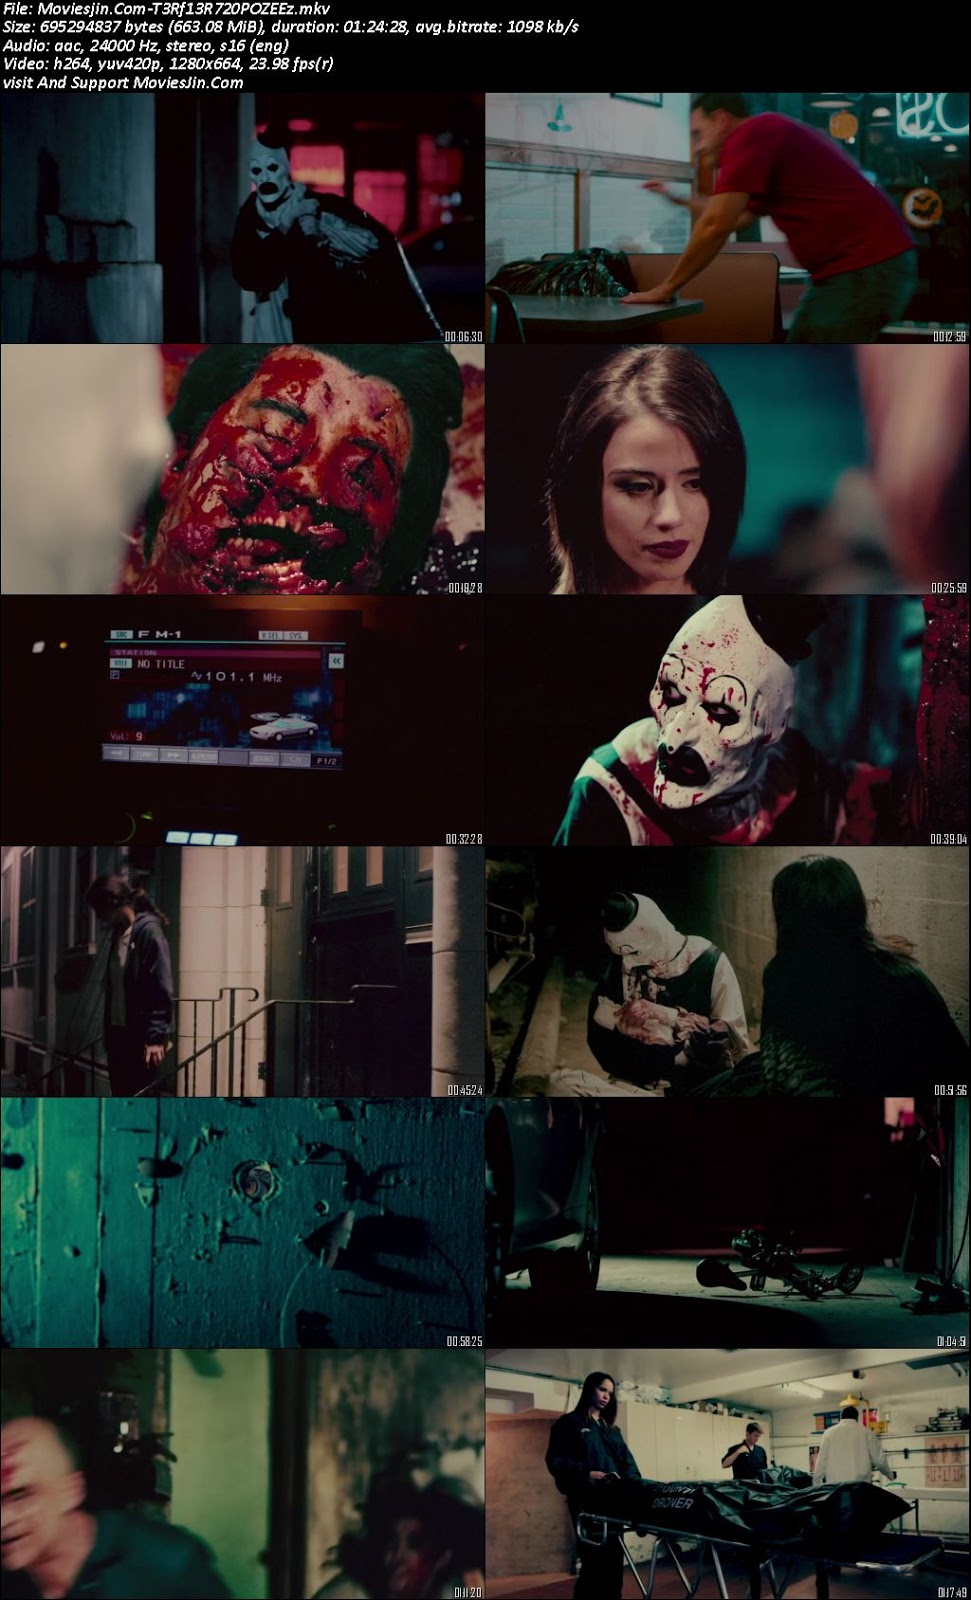 Watch Online Terrifier 2017 English WEBDL 720p Download 650MB Full Movie Download Khatrimaza, free download 9xmovies,